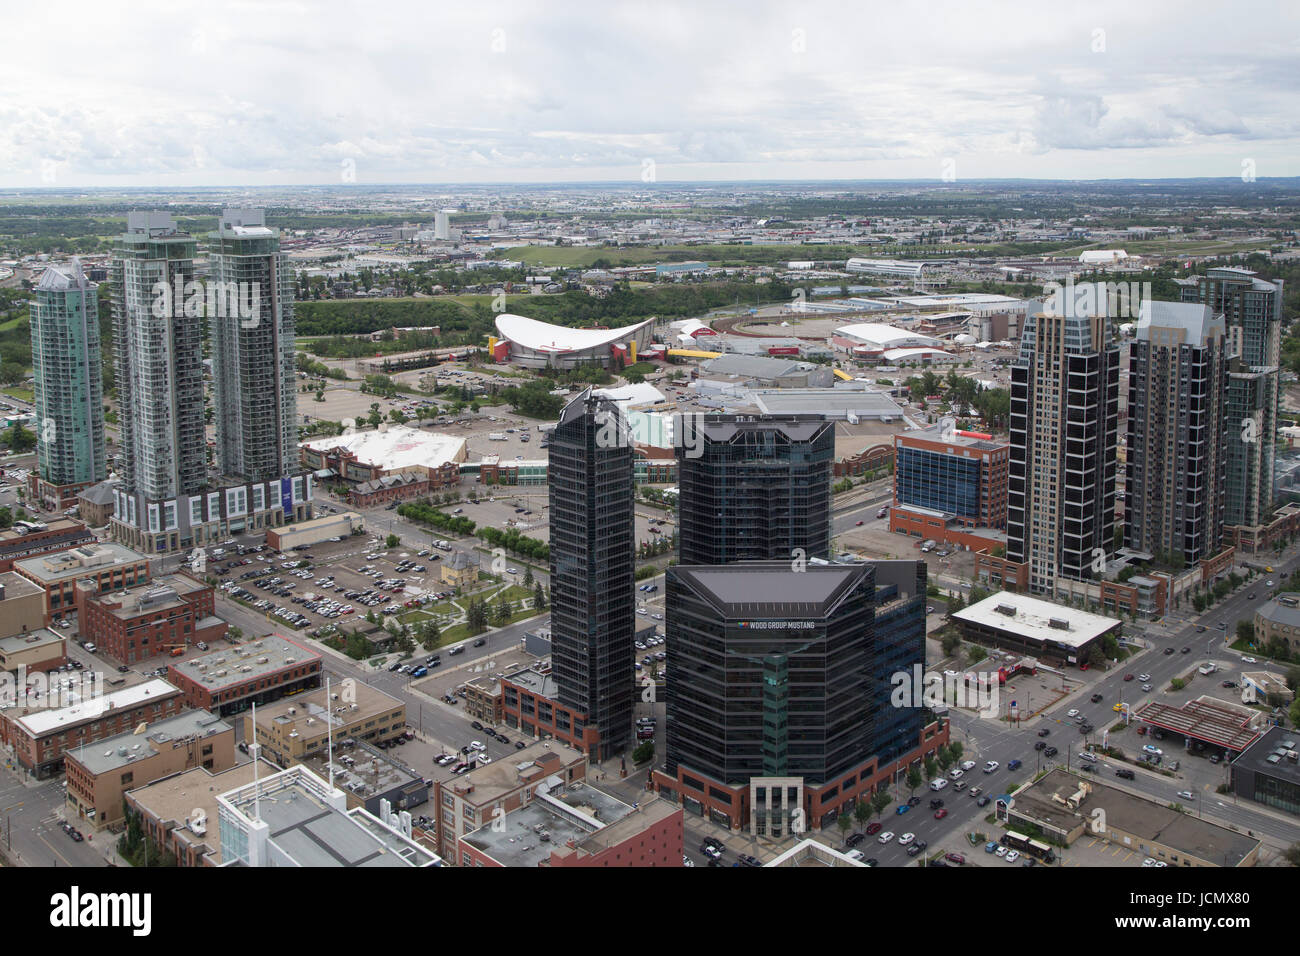 Buildings in downtown Calgary, Canada. The Saddledome, the home of the Calgary Flames, and Stampede Park, lies beyond - Stock Image